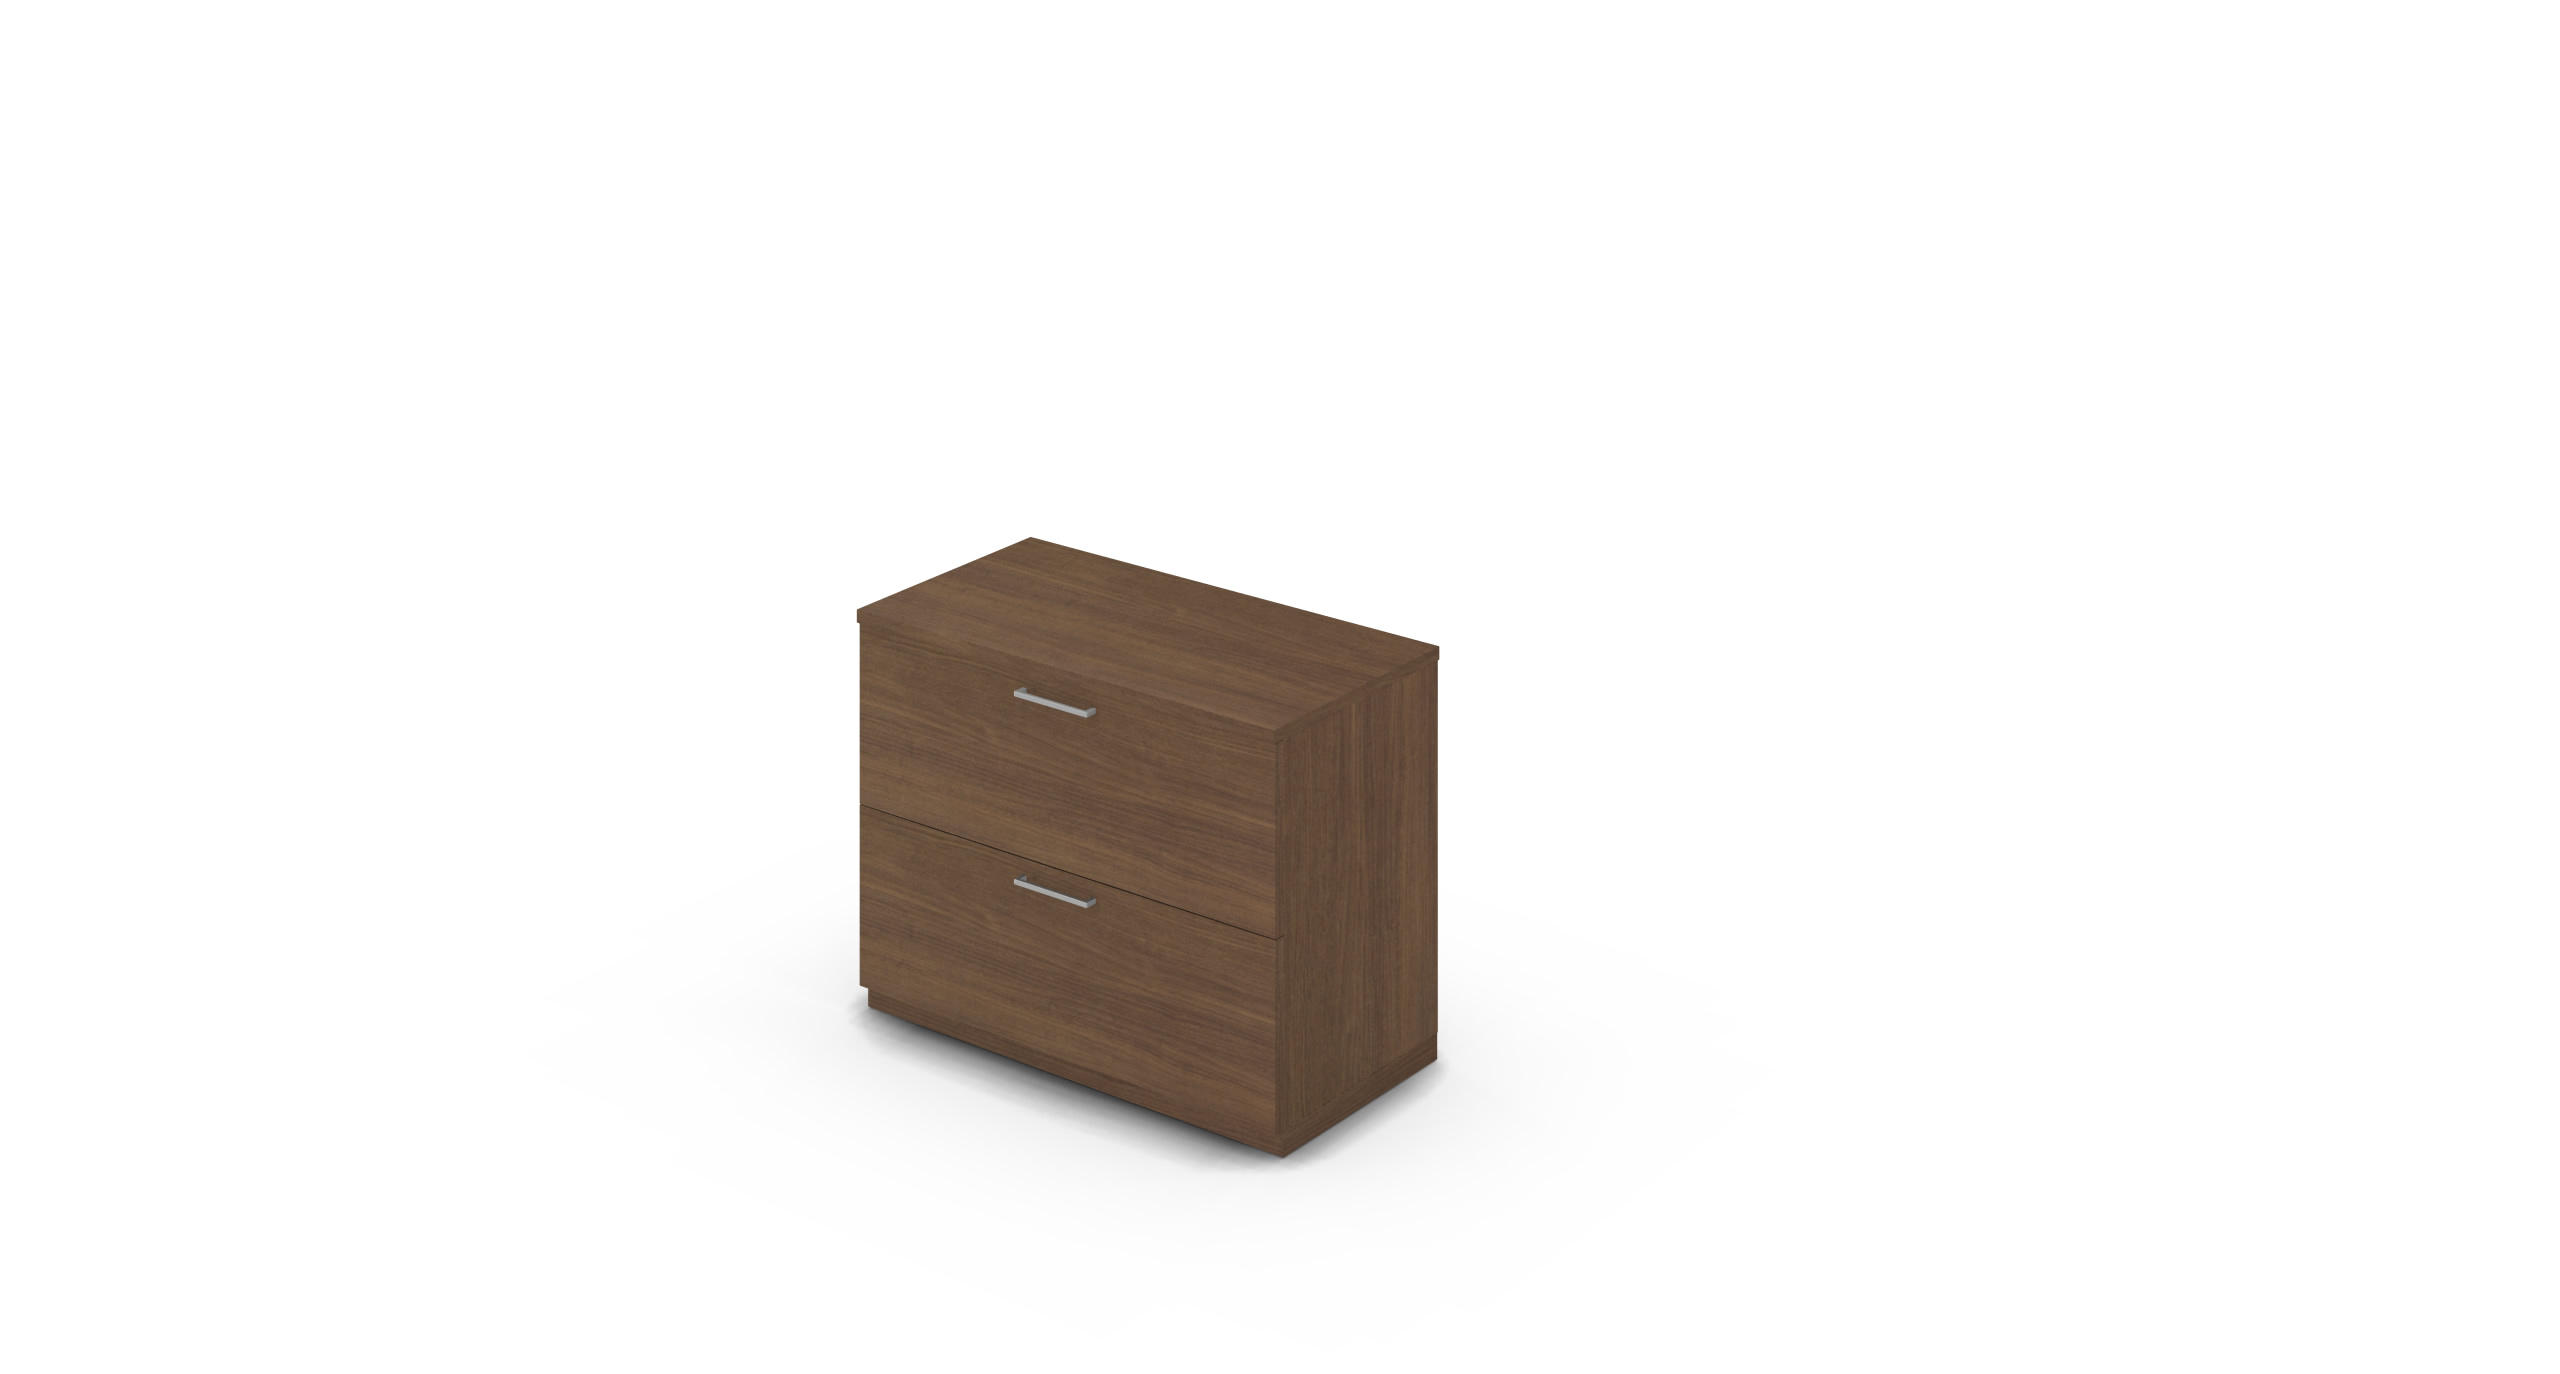 Cabinet_900x450x775_DR_Walnut_Bar_Square_NoCylinder